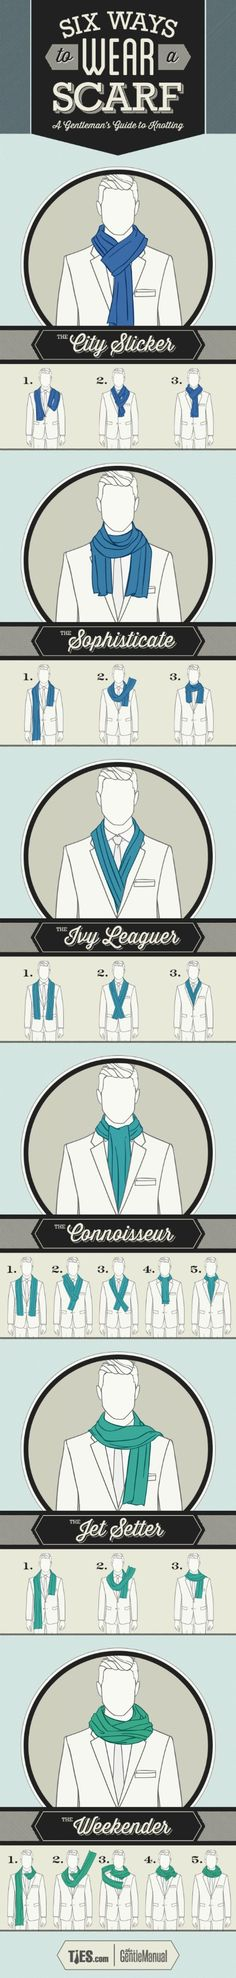 Six Ways To Wear A Scarf. Seis maneras de llevar una bufanda.